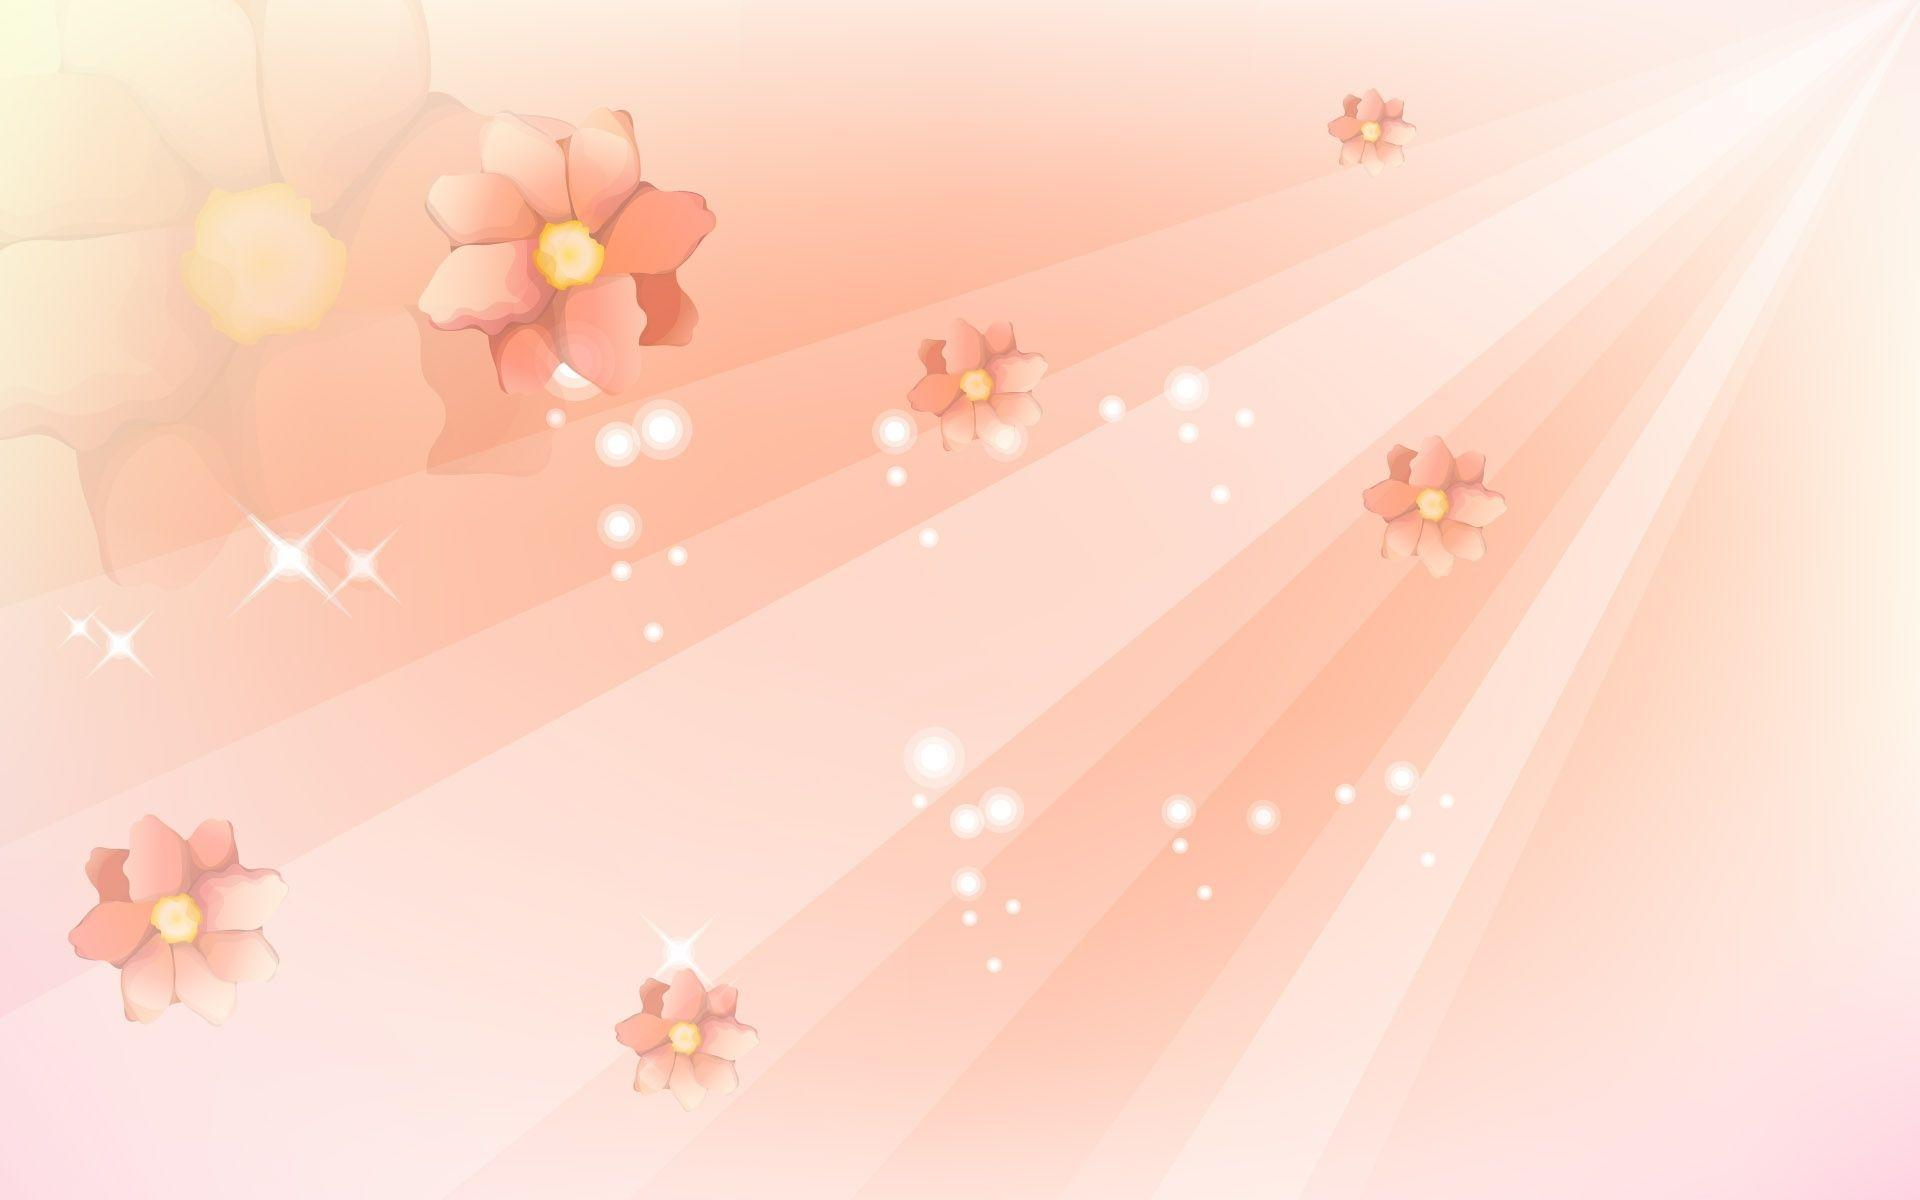 Pretty Pink Backgrounds - Wallpaper Cave